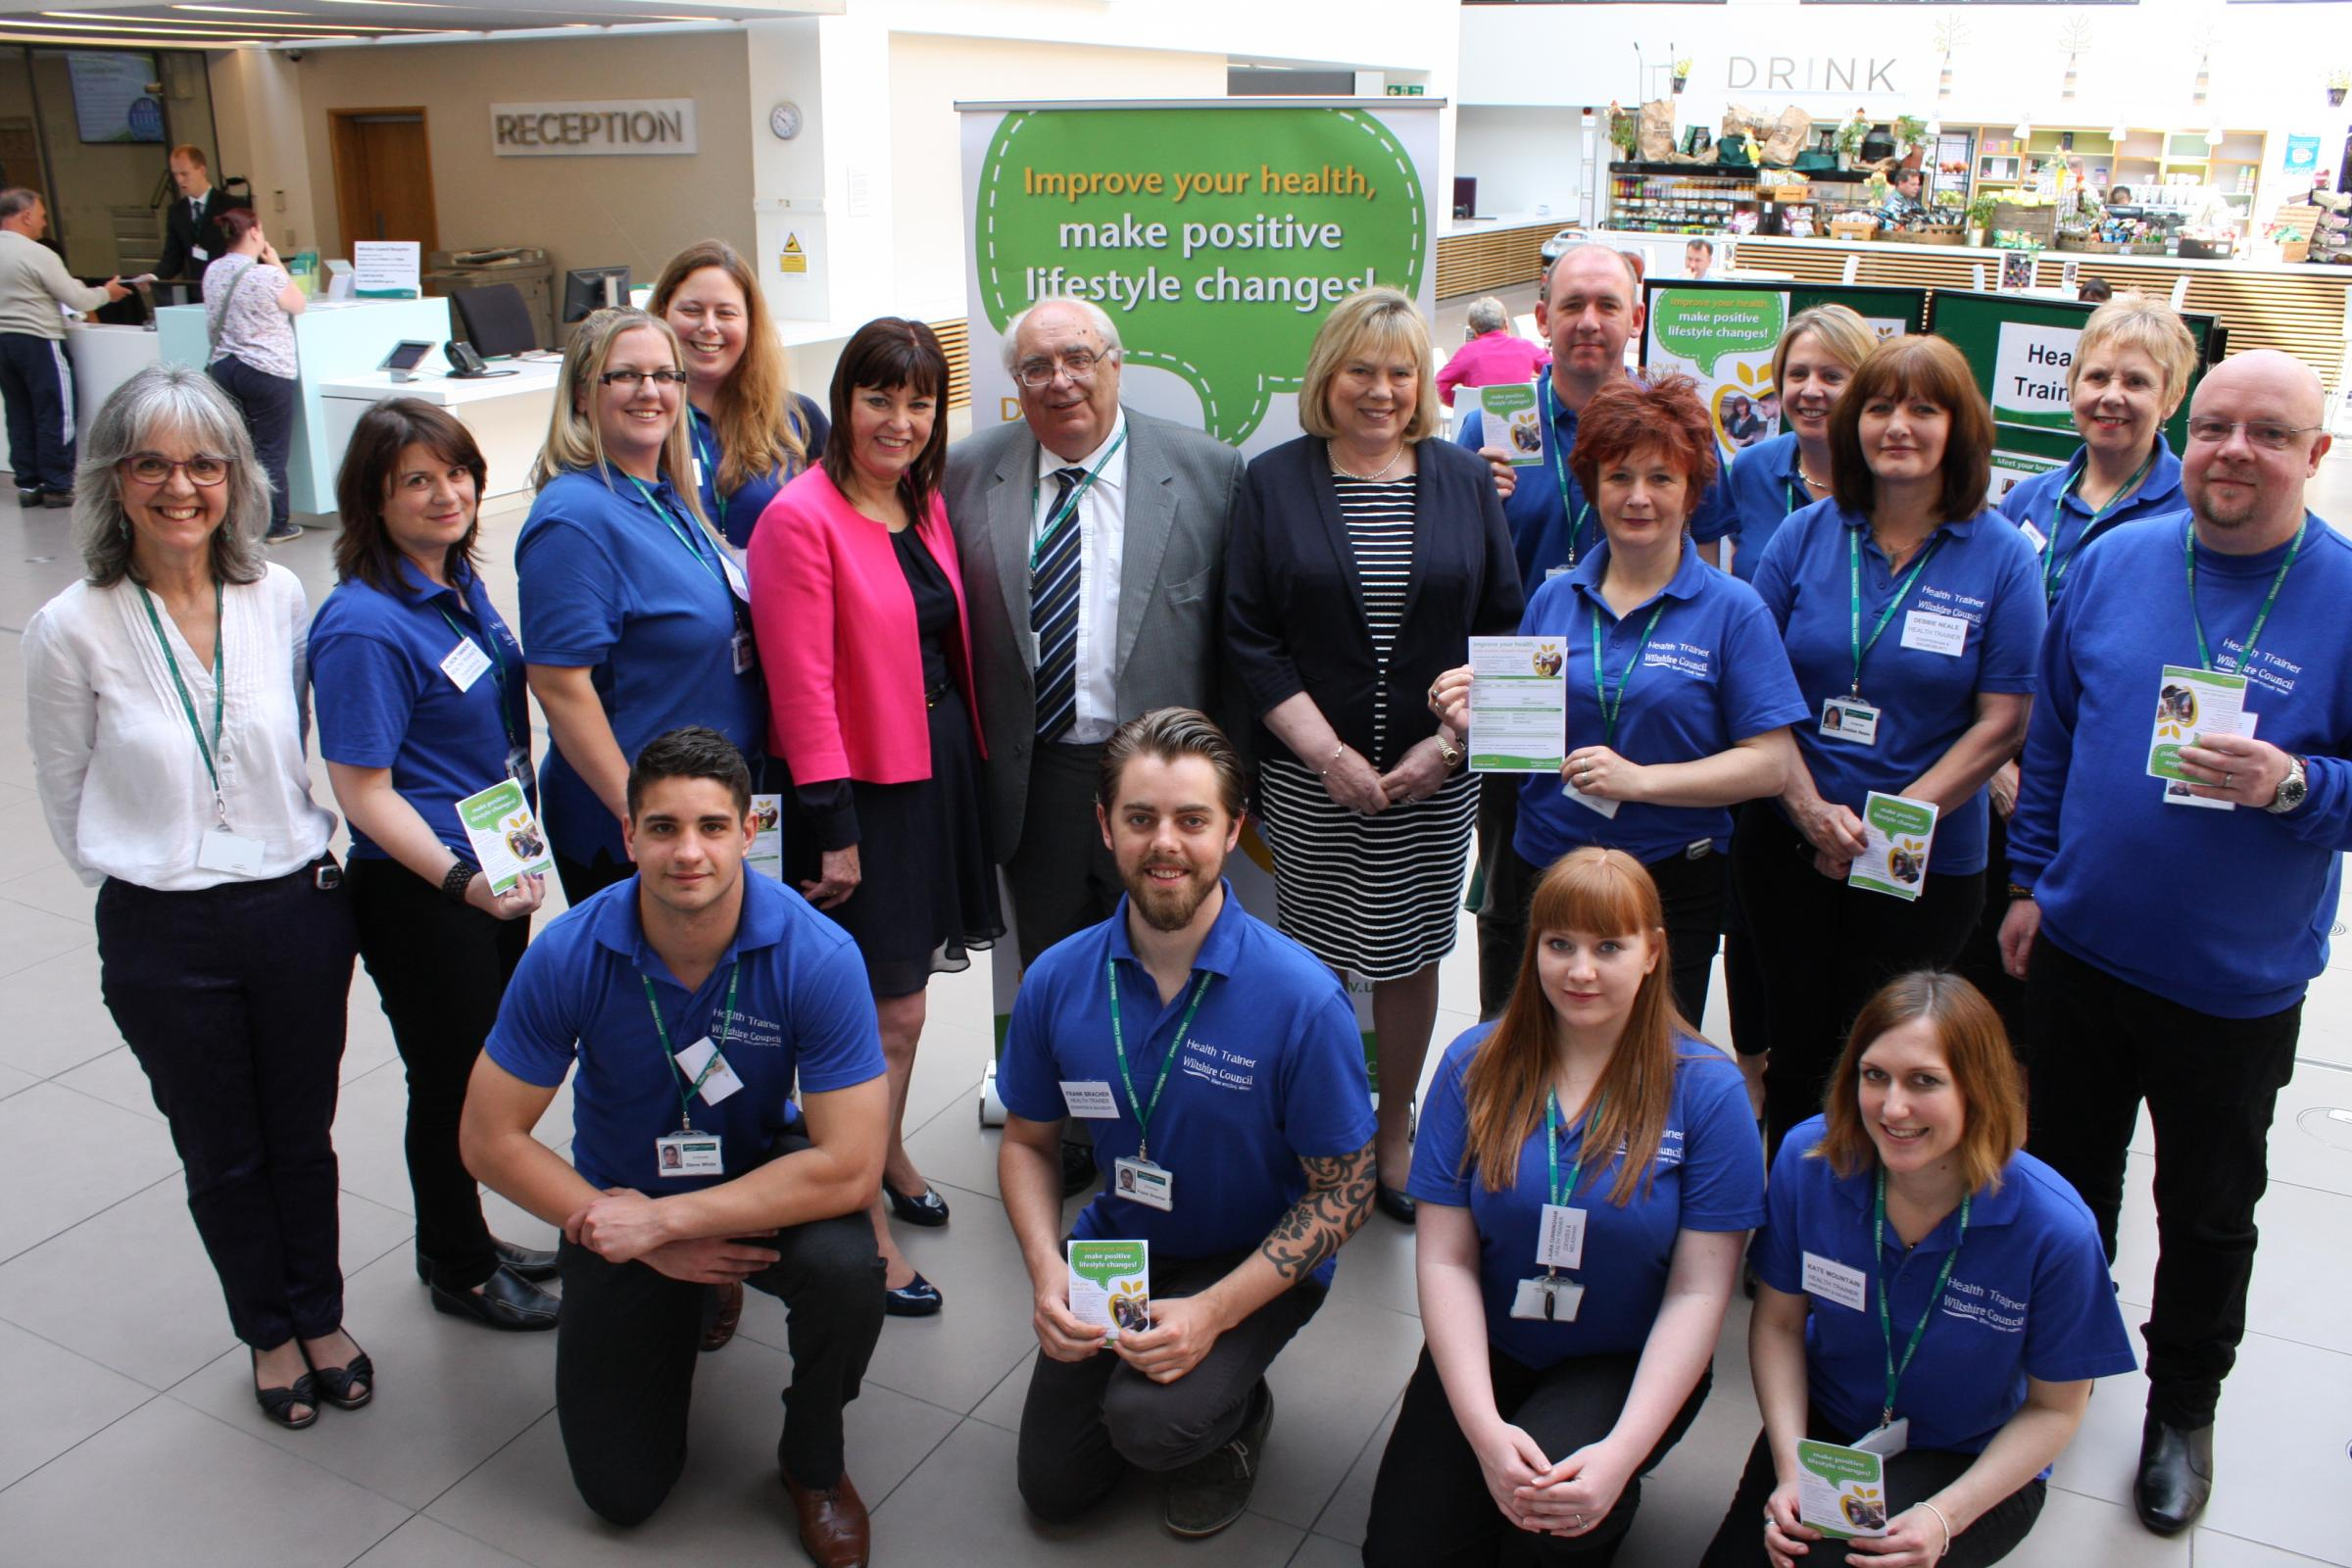 Health trainer programme rolls out across Wiltshire